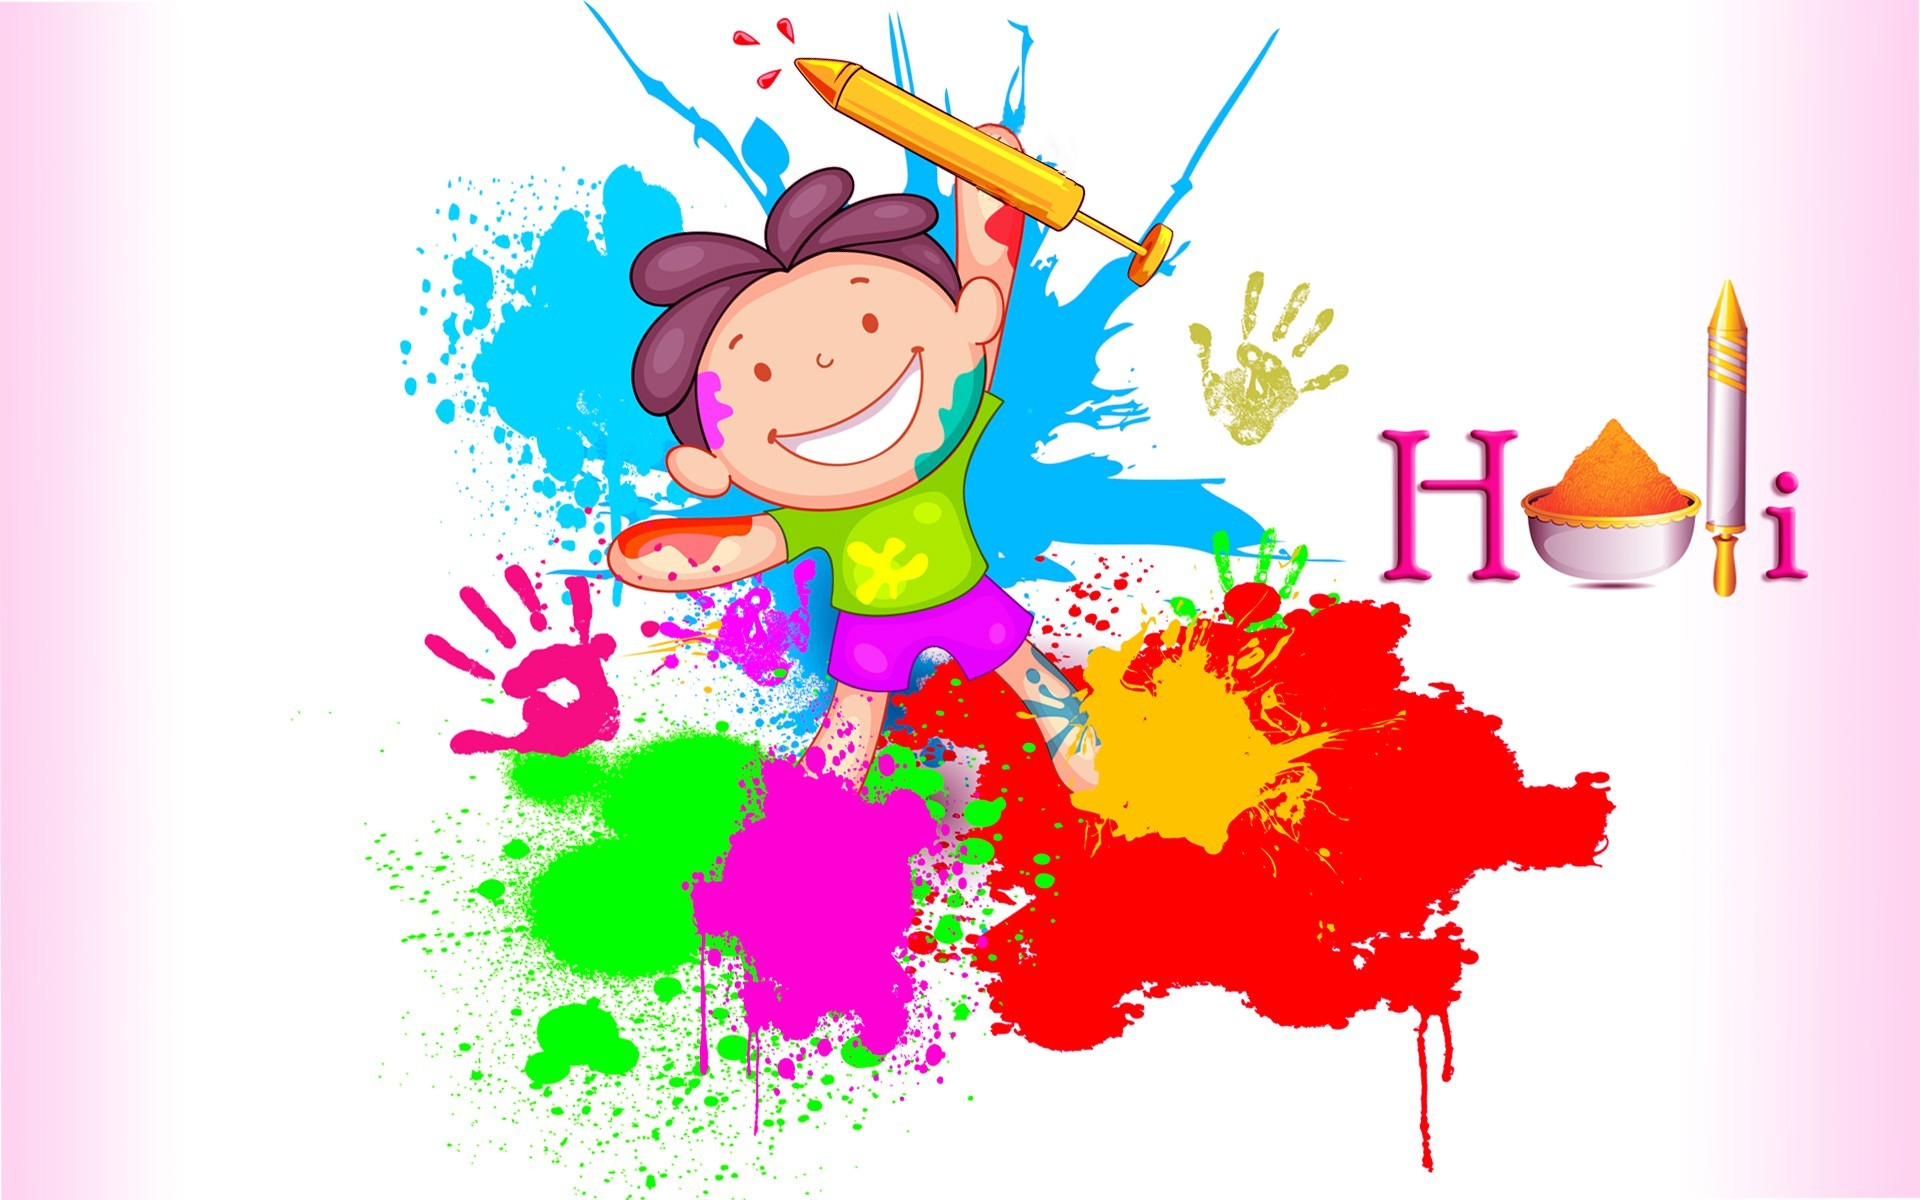 Download Animated Holi Wallpaper Gallery